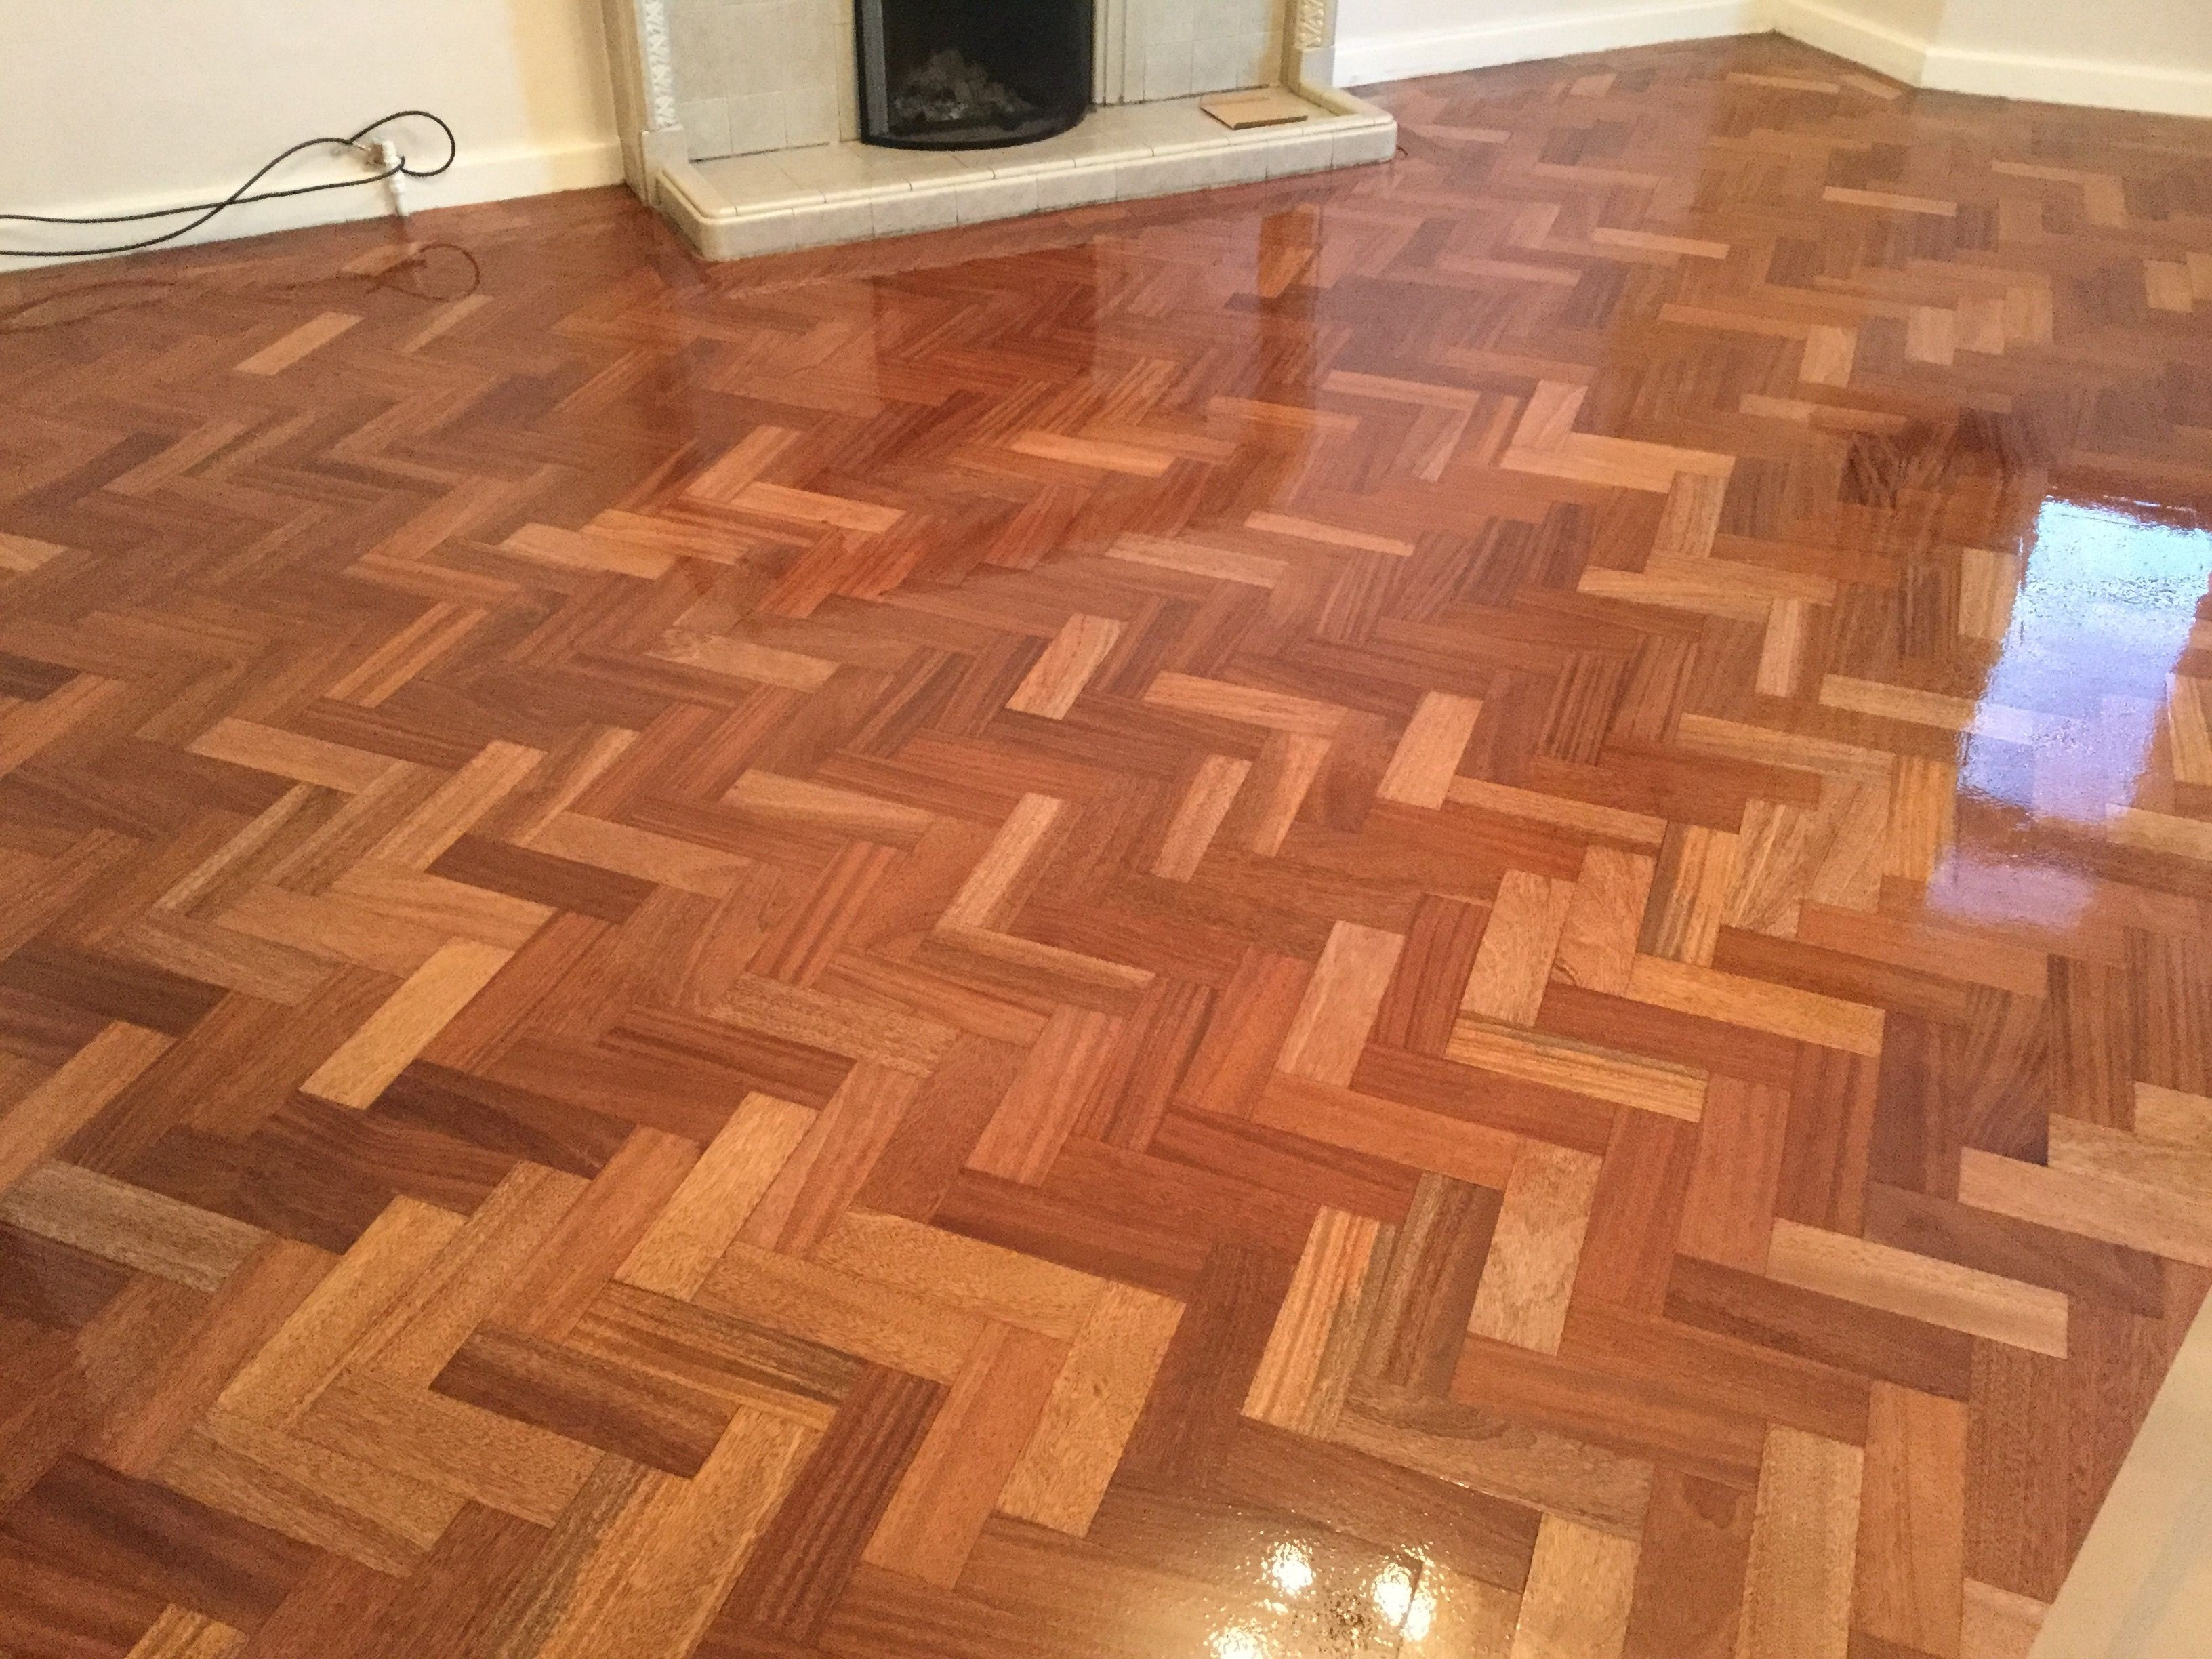 22 Perfect Bona Hardwood Floor Colors 2021 free download bona hardwood floor colors of https dizpos com make your own hardwood floor home remodel pertaining to bona hardwood fresh this teak floor was given a new lease of life with bona mega lacque